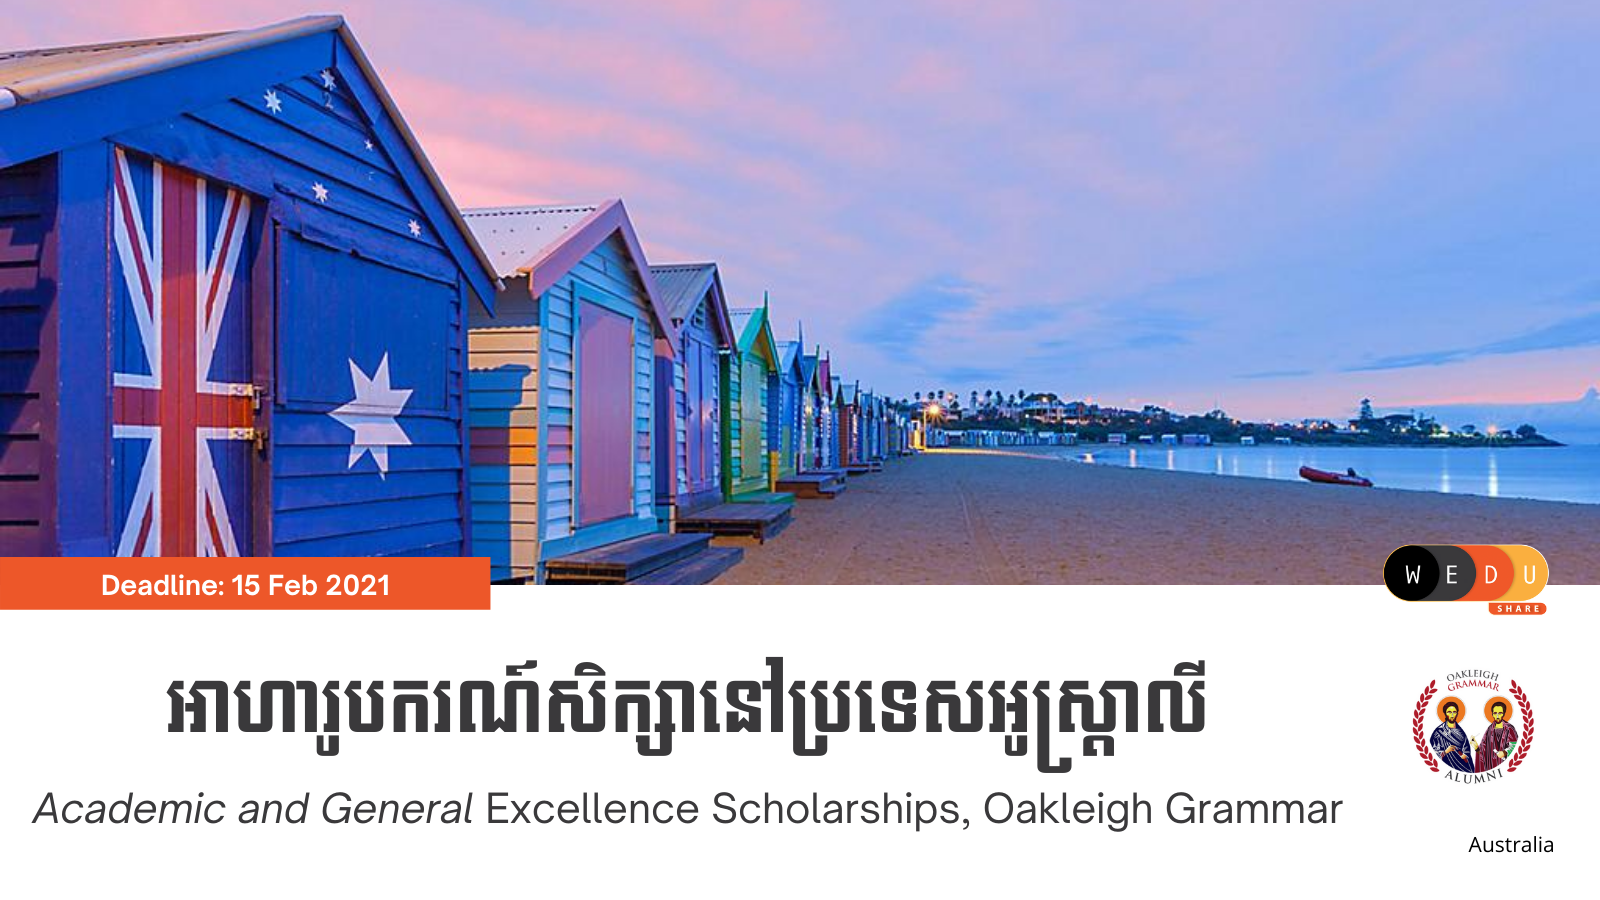 Academic and General Excellence Scholarships